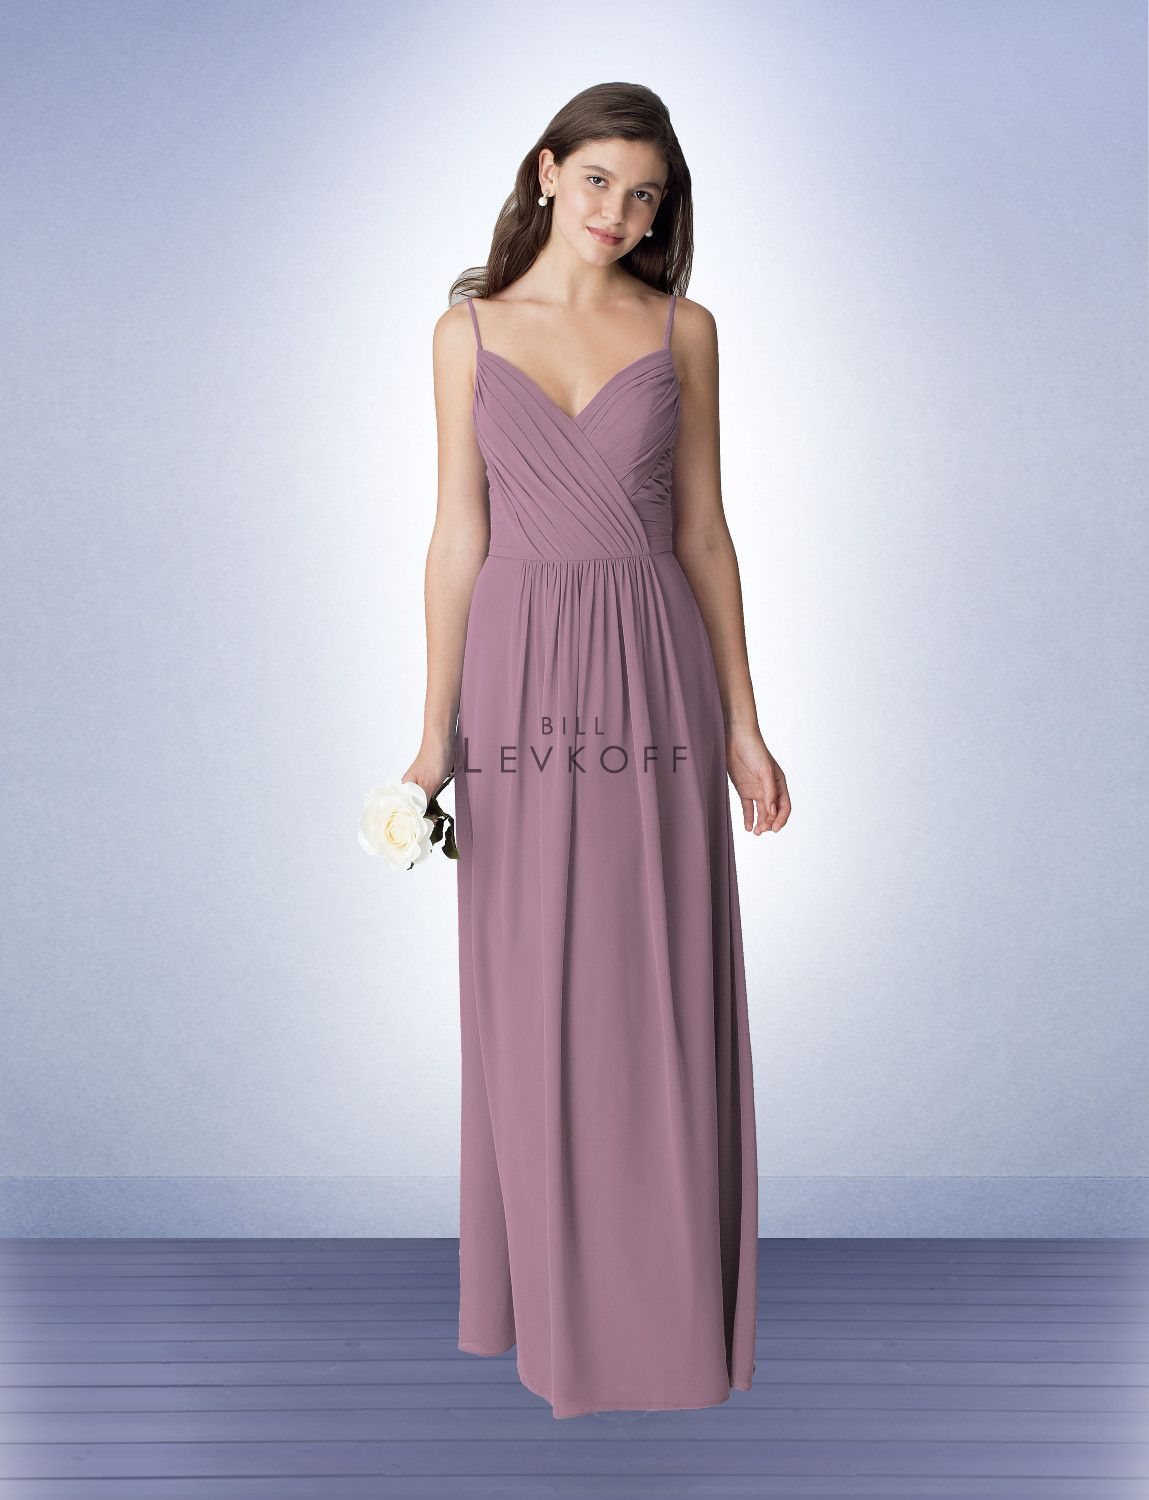 Bridesmaid dress style 1269 bridesmaid dresses by bill levkoff bridesmaid dress style 1269 bridesmaid dresses by bill levkoff ombrellifo Choice Image